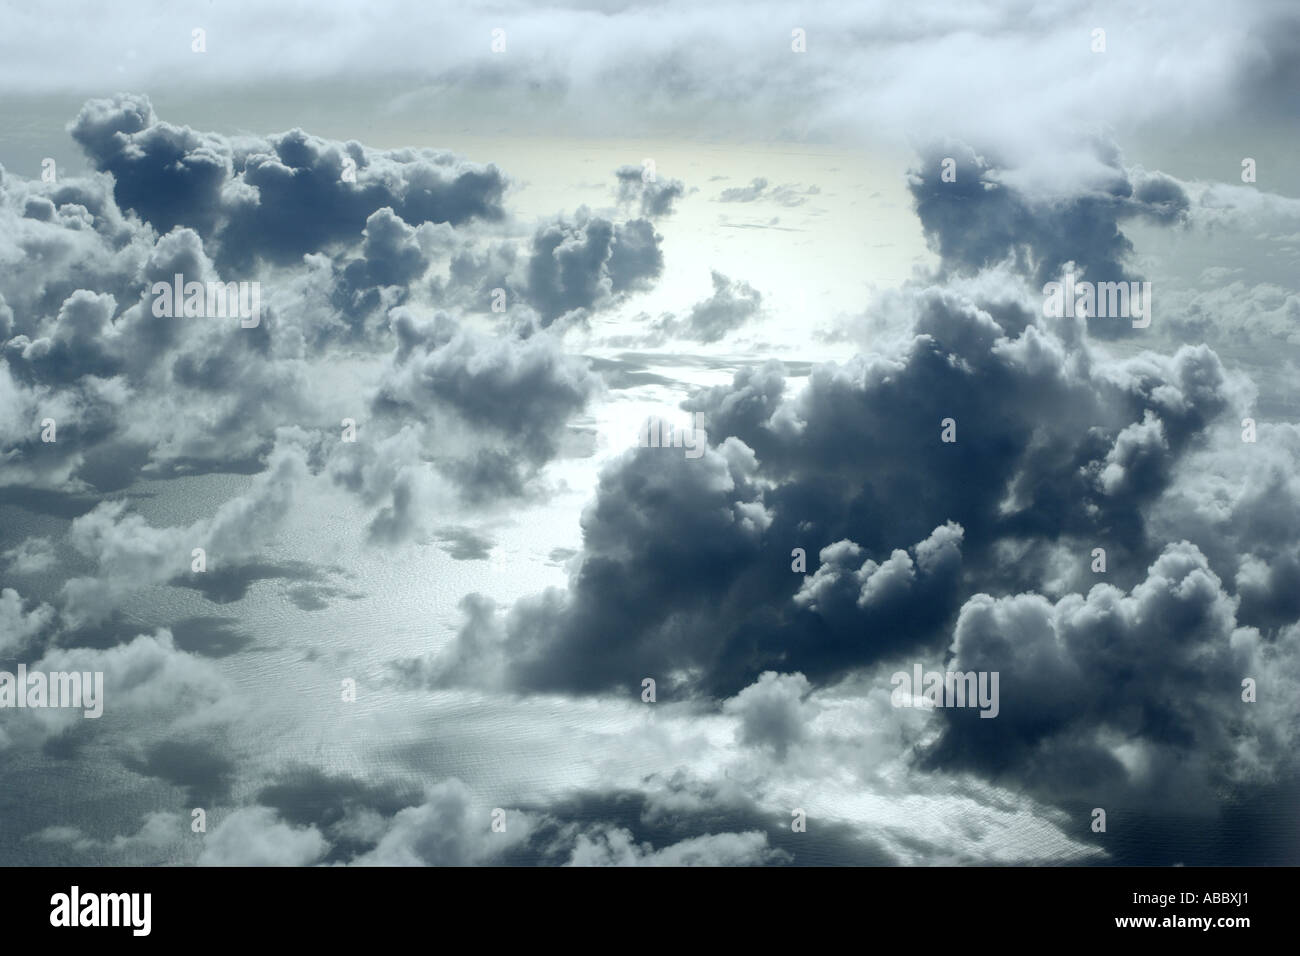 In the Clouds over the Coral Sea from Lizard island to Cairns, Queensland, Australia - Stock Image